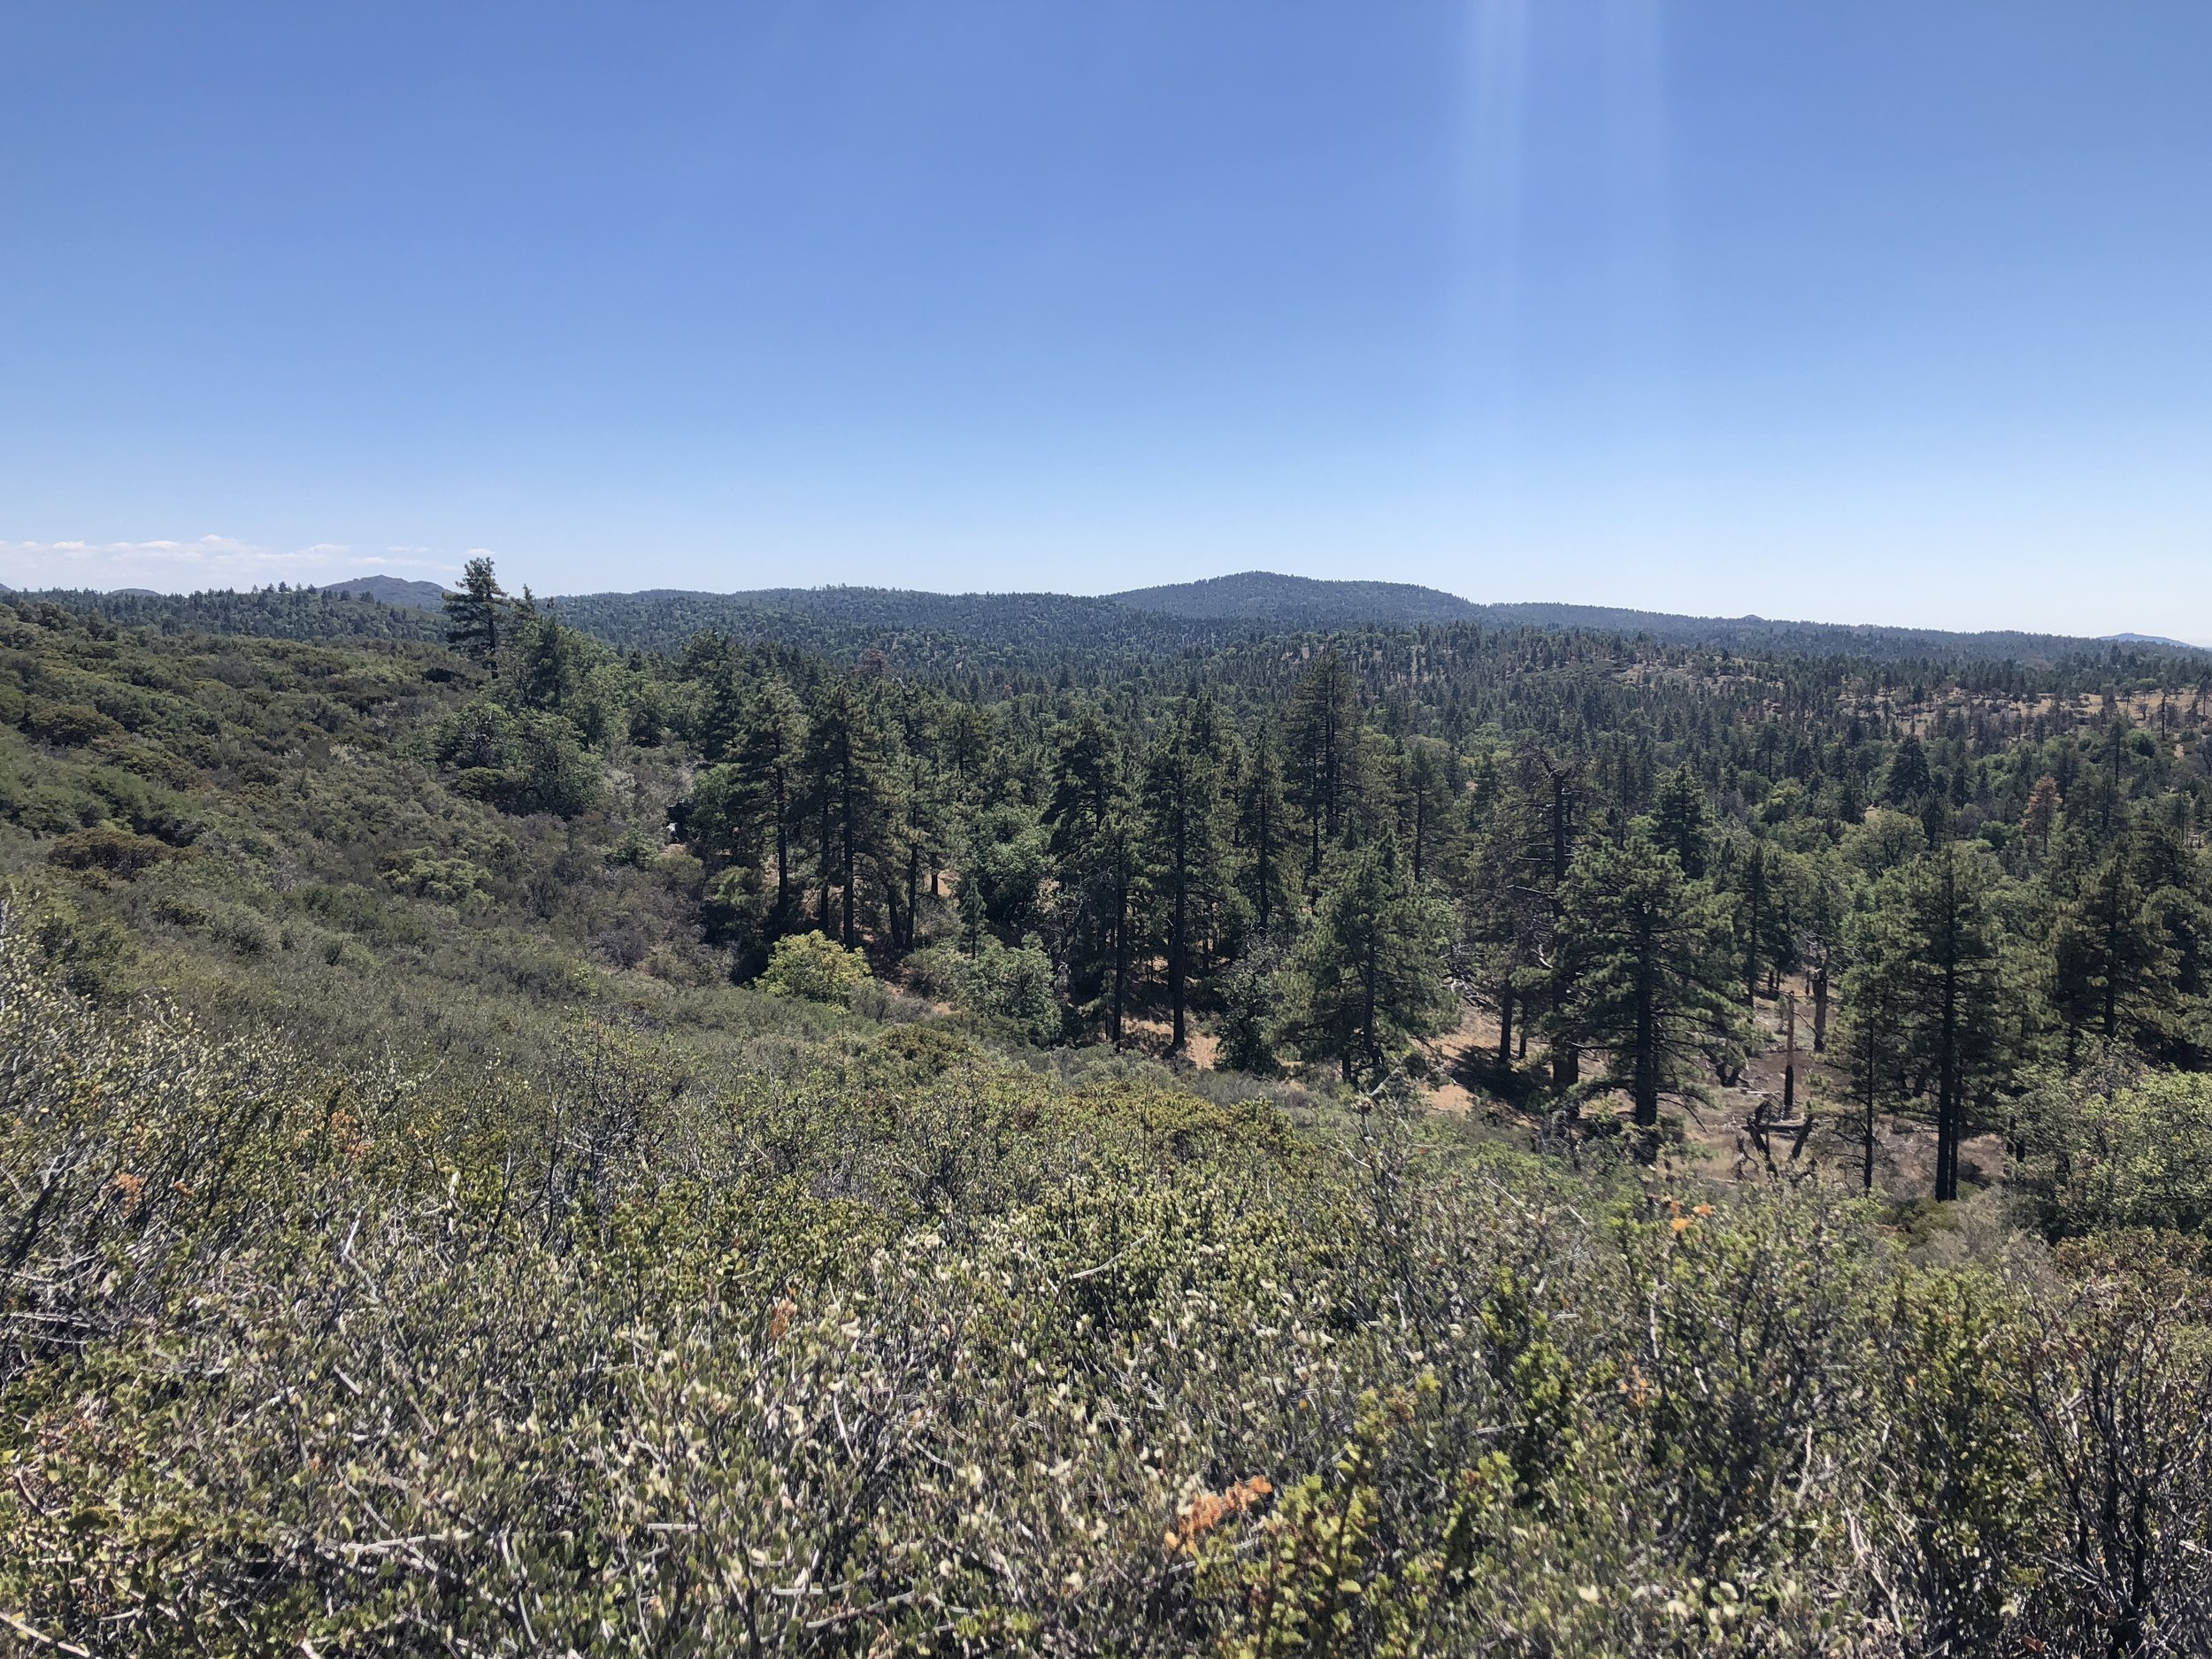 Looking southwest from the PCT.